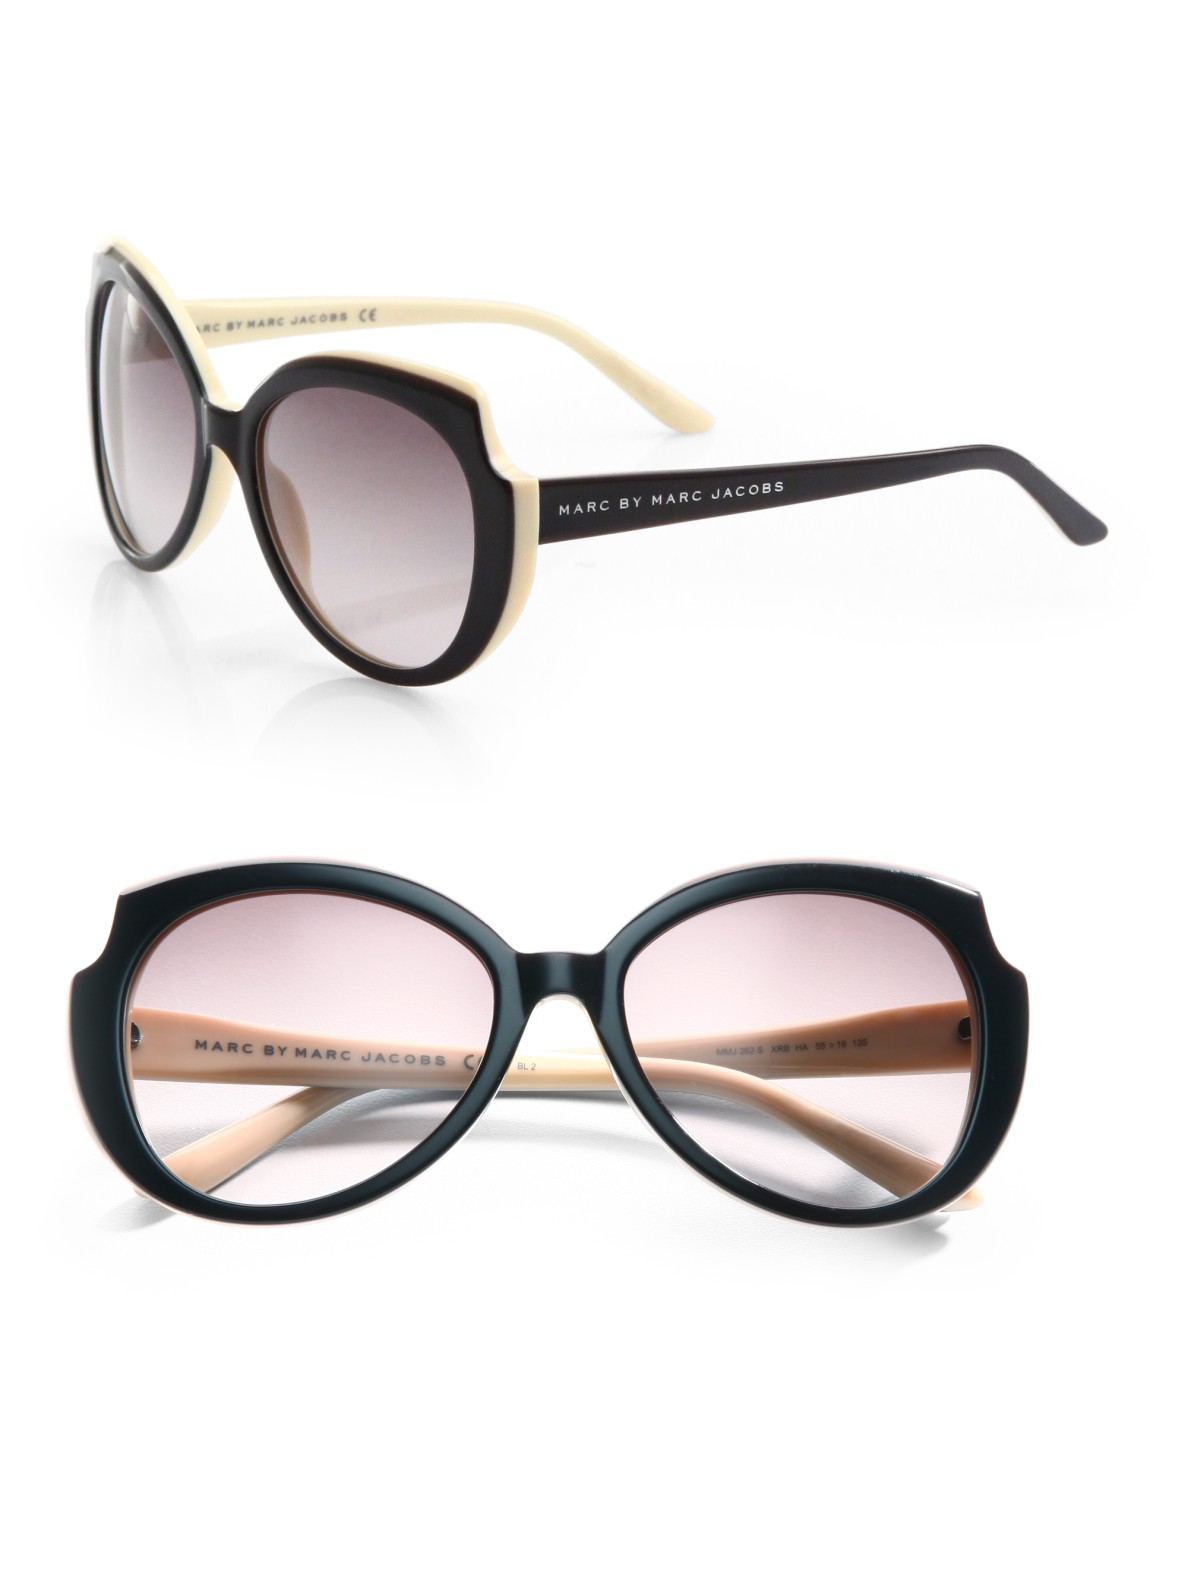 Marc By Marc Jacobs Round Frame Glasses : Marc By Marc Jacobs Two-tone Round Sunglasses in Black Lyst